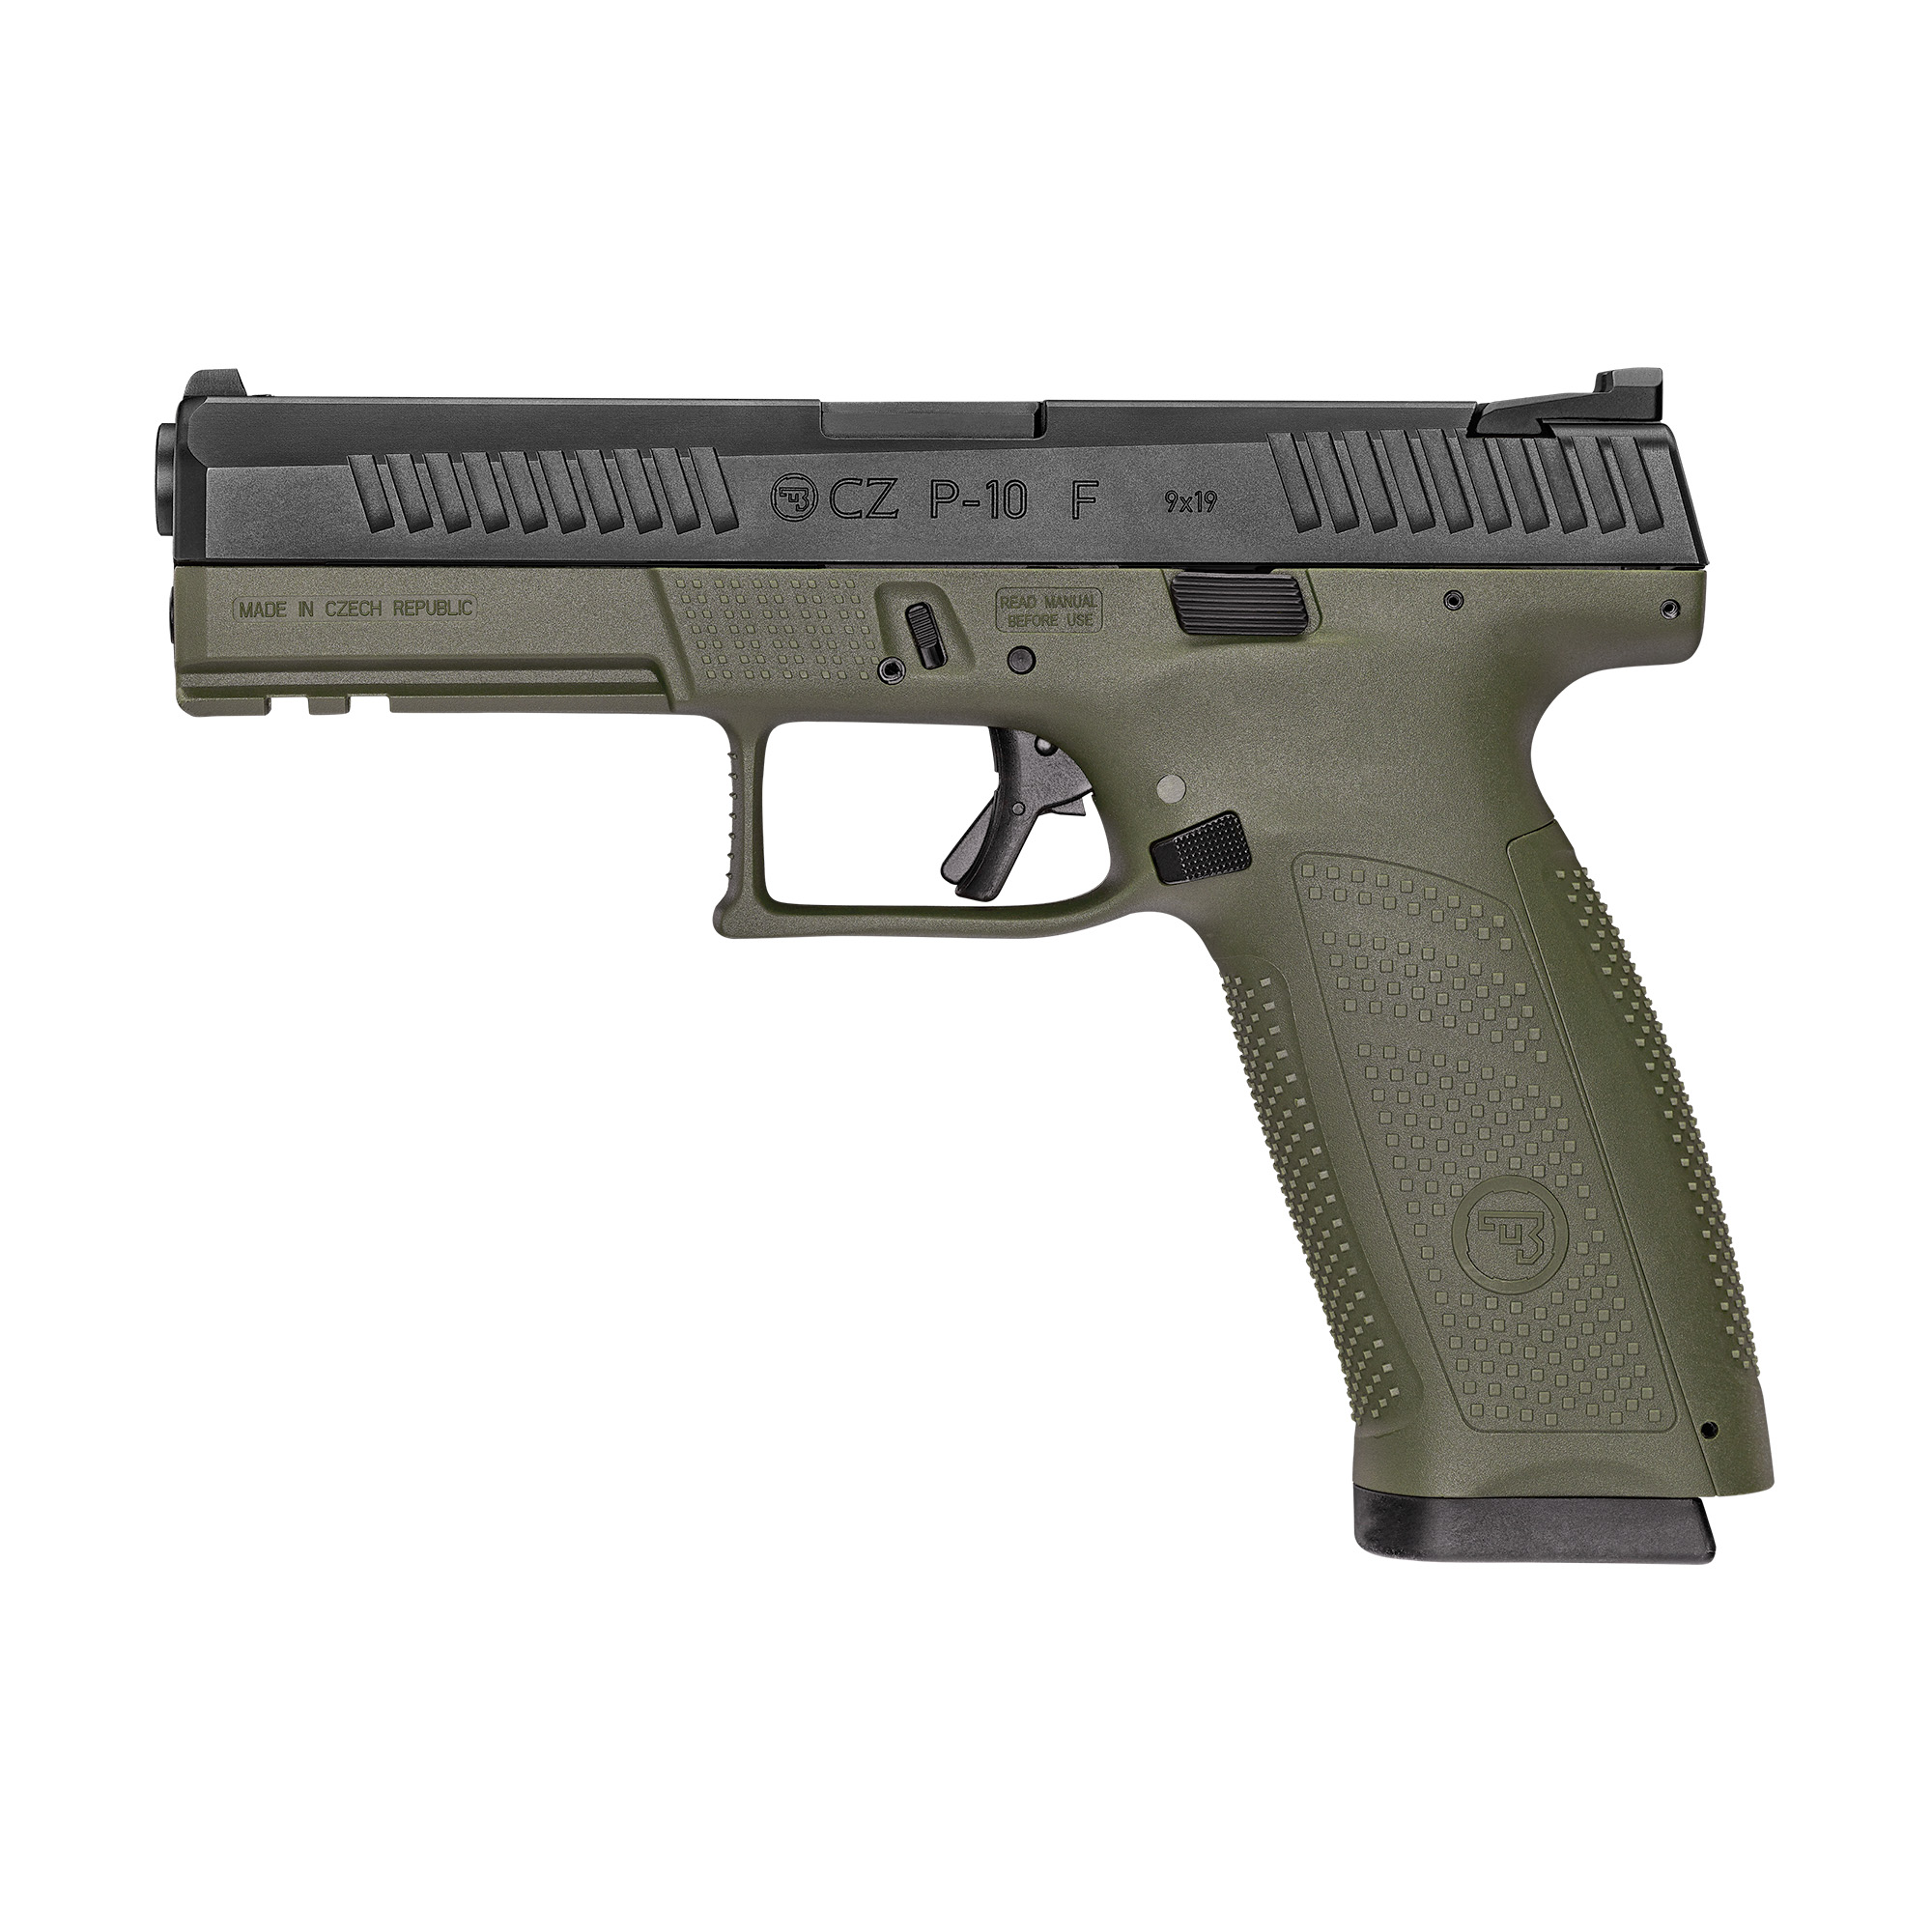 """With CZ reliability"""" engineered ergonomics and a bevy of features both familiar and new"""" the P-10F is the complete package. The CZ grip angle"""" helps the P-10F avoids that 'brick-in-the-hand' feeling that has plagued many in the striker-fired genre"""" allowing it to point naturally. A mild palm swell"""" deep beavertail and three interchangeable backstraps make the P-10F fit a wide variety of hands. The P-10F's trigger is designed to minimize creep and stacking"""" and after initial break-in averages a clean 4.5-5 lb. pull and rebounds with a short"""" positive reset - meaning single shots can be meticulously placed while follow-ups are effortless. Built to withstand the rigors of military use"""" its fiber-reinforced polymer frame and hardy nitride finish are made for the daily grind. A generous trigger guard allows use with gloved hands while being undercut to allow as high a grip as possible"""" and a set of metal tactical sights allow for one-handed manipulation of the slide on a belt. Like all CZ pistols"""" the P-10F is built with CZ's legendary cold hammer forged barrel."""